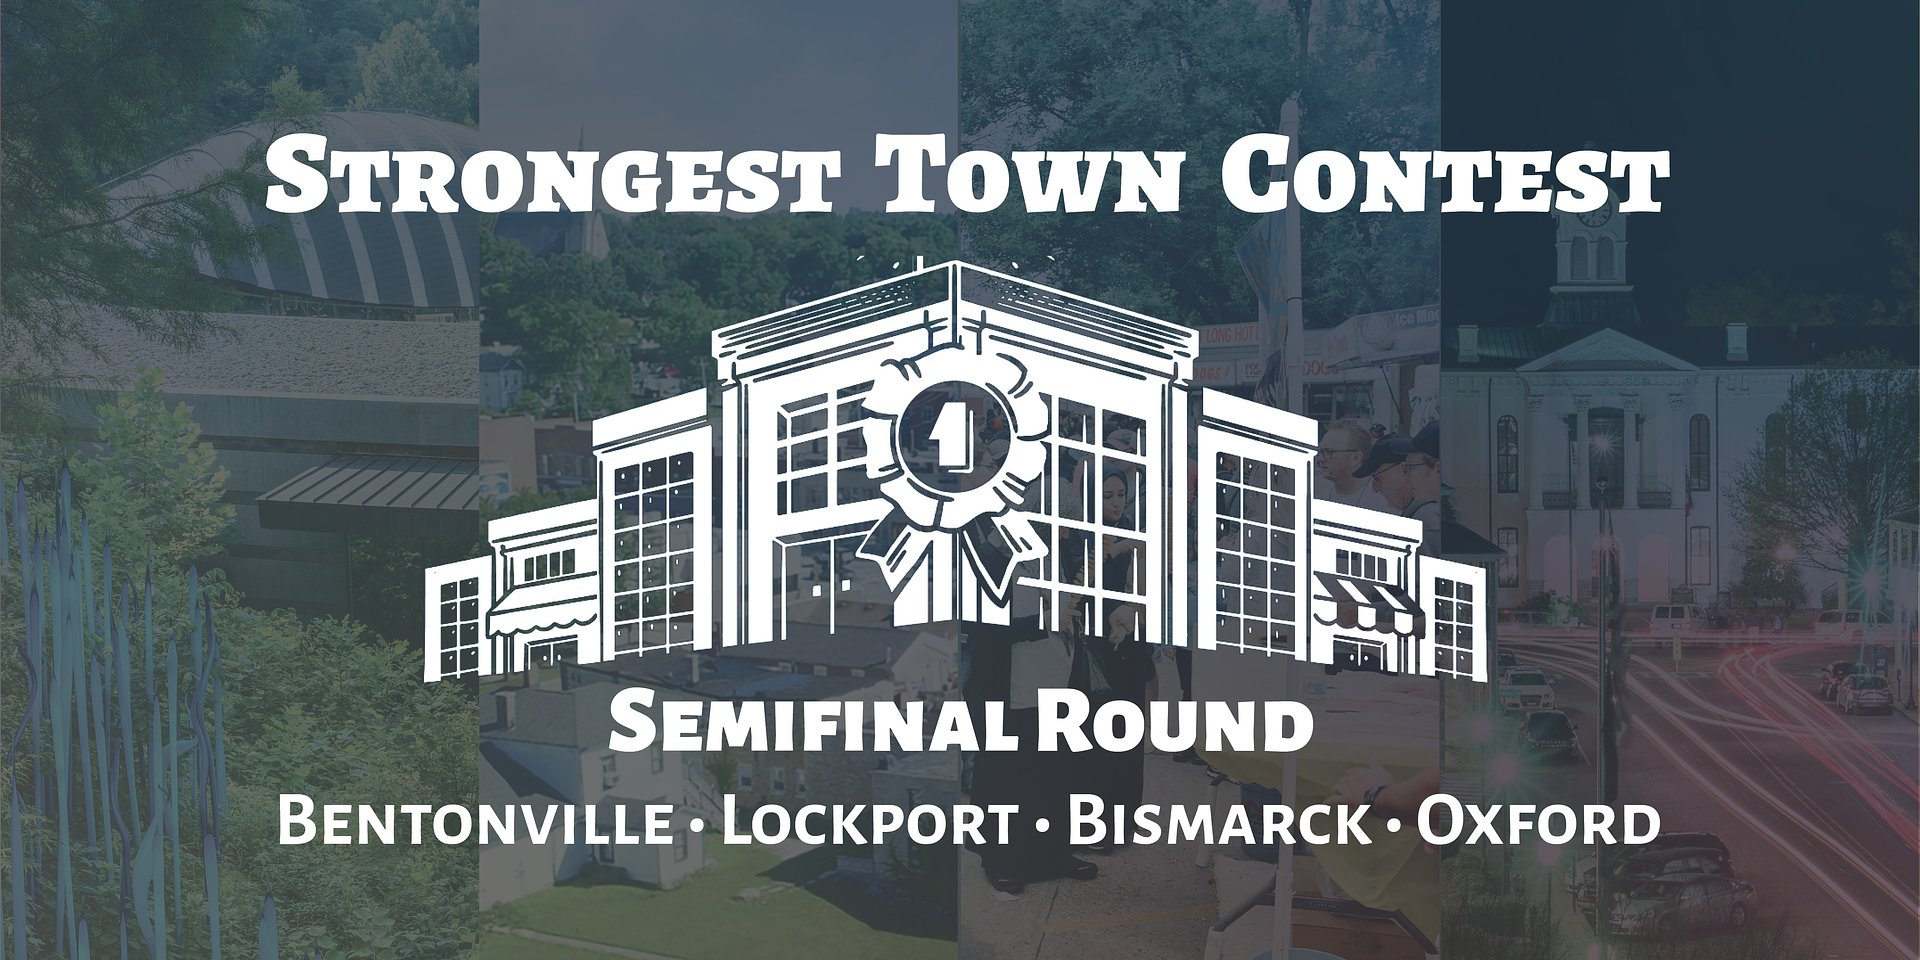 Four towns speak their strength in Strongest Towns semifinals